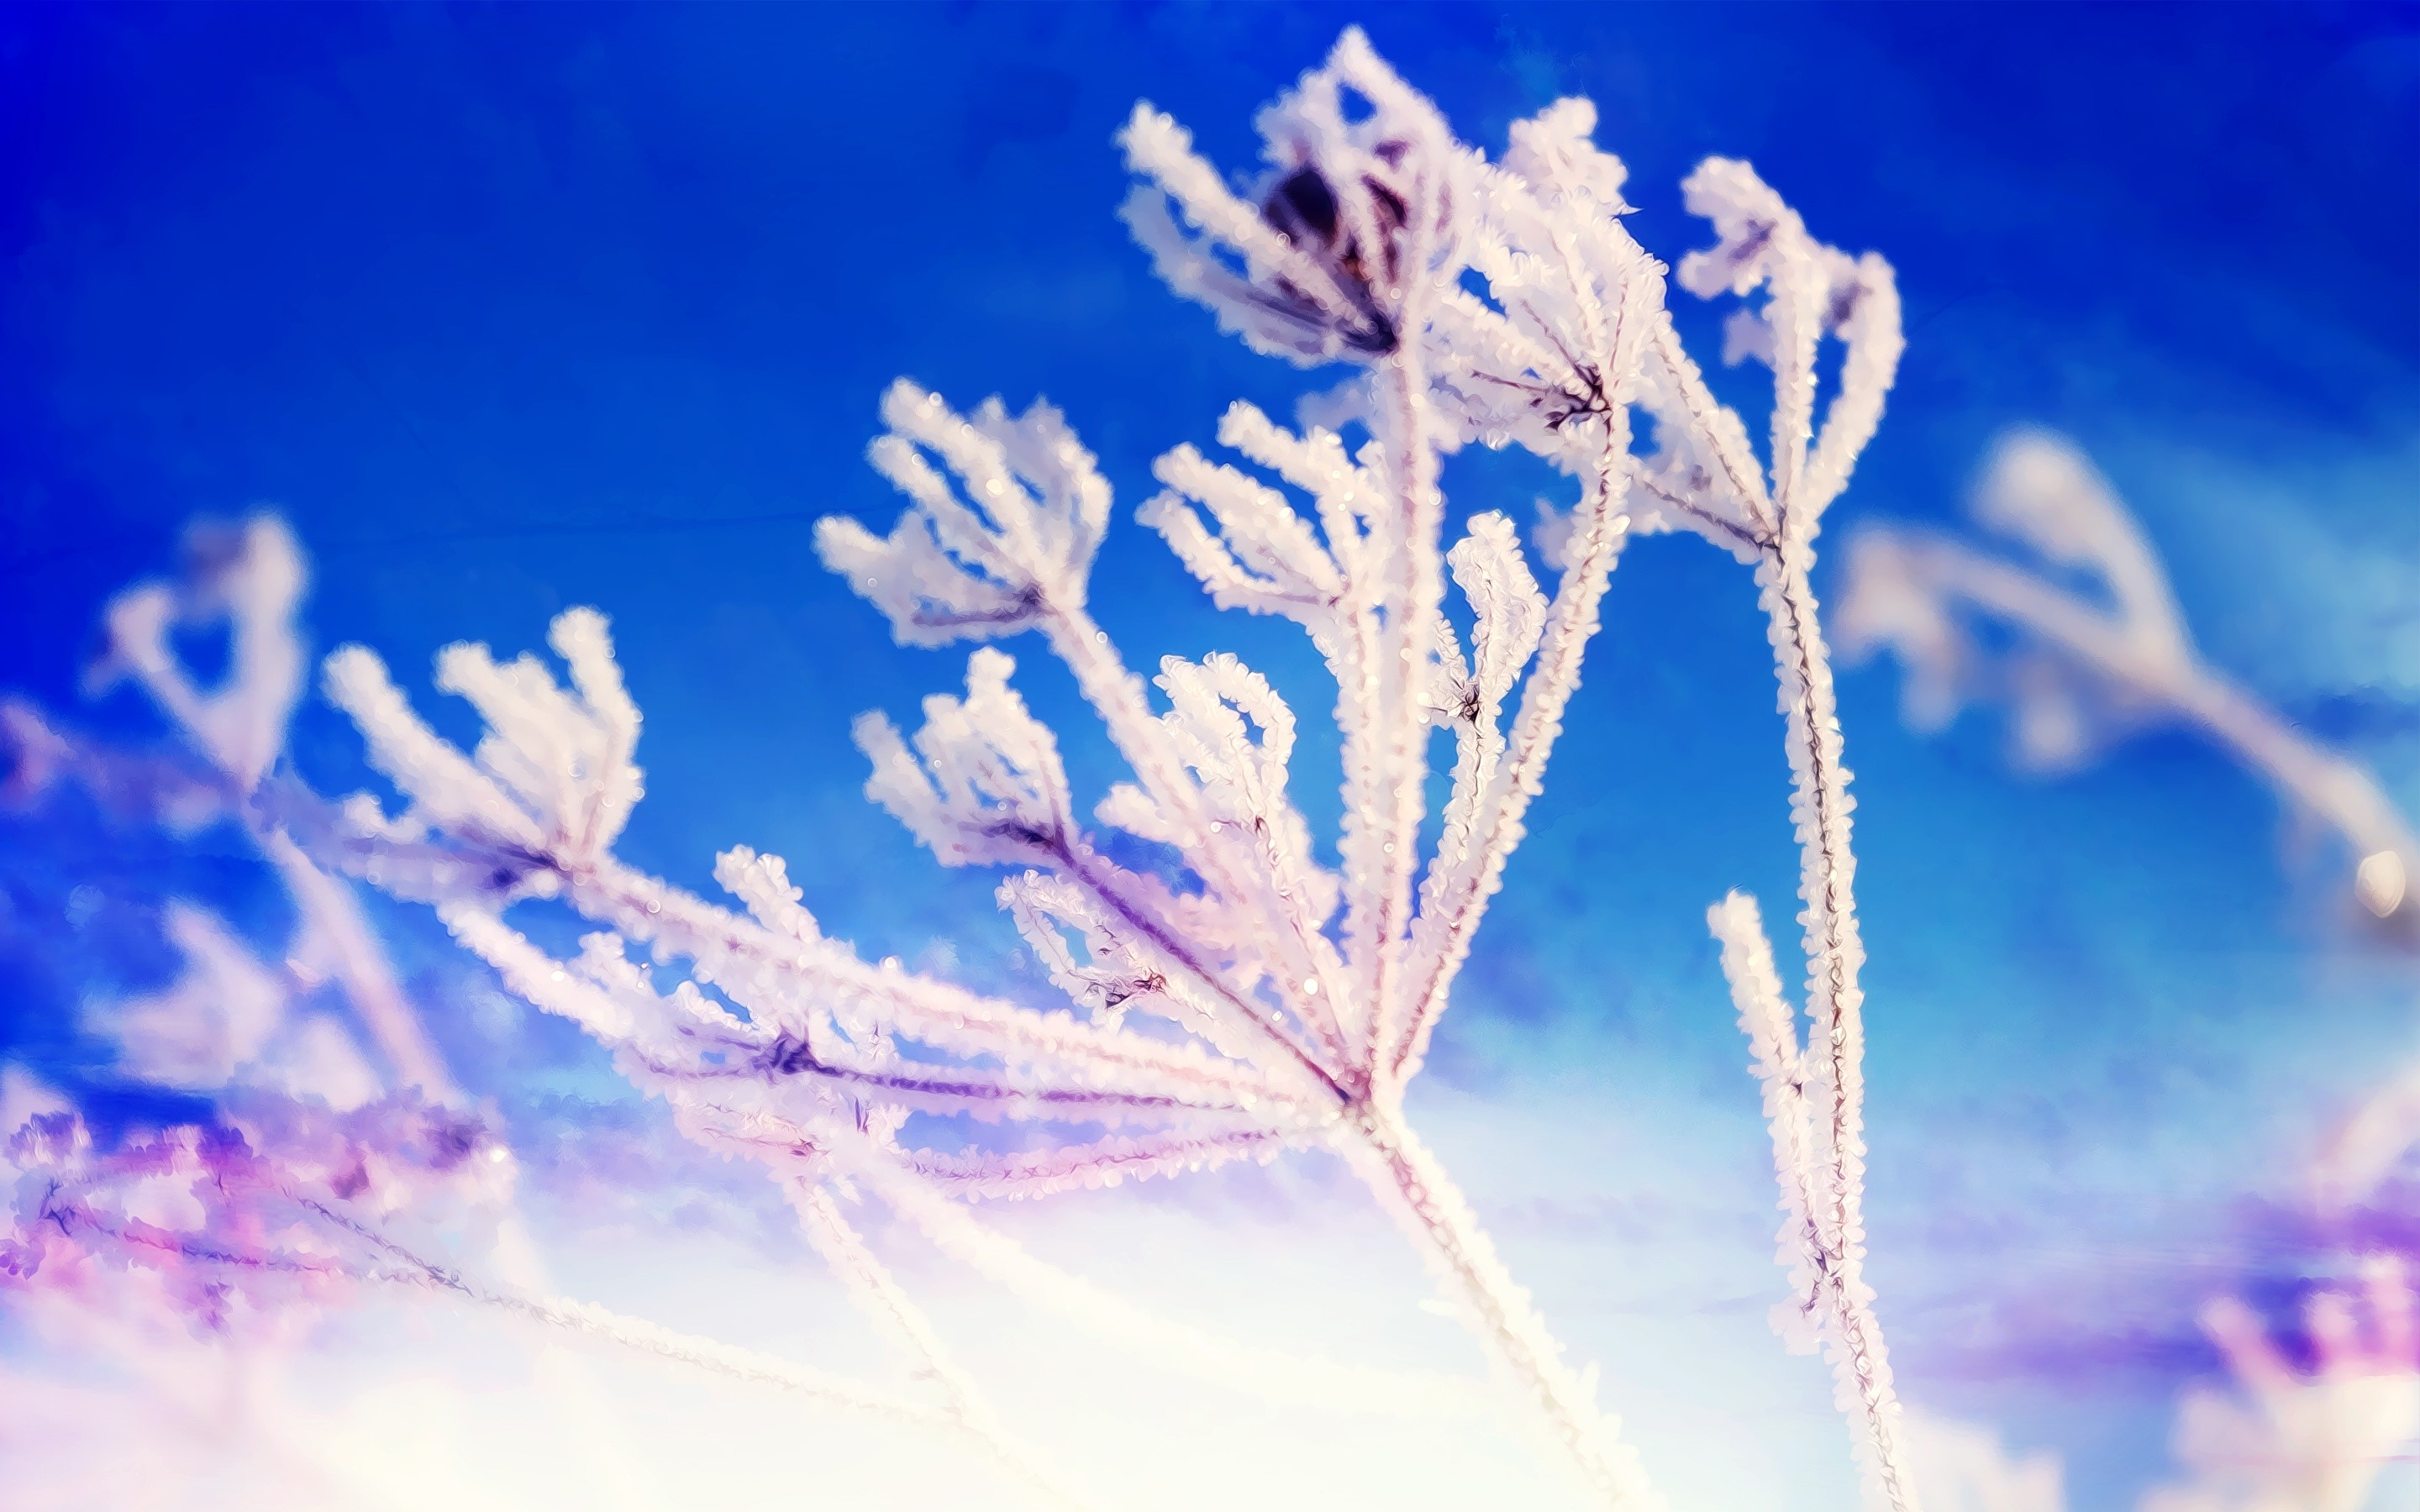 Wallpaper Winter Fantasy